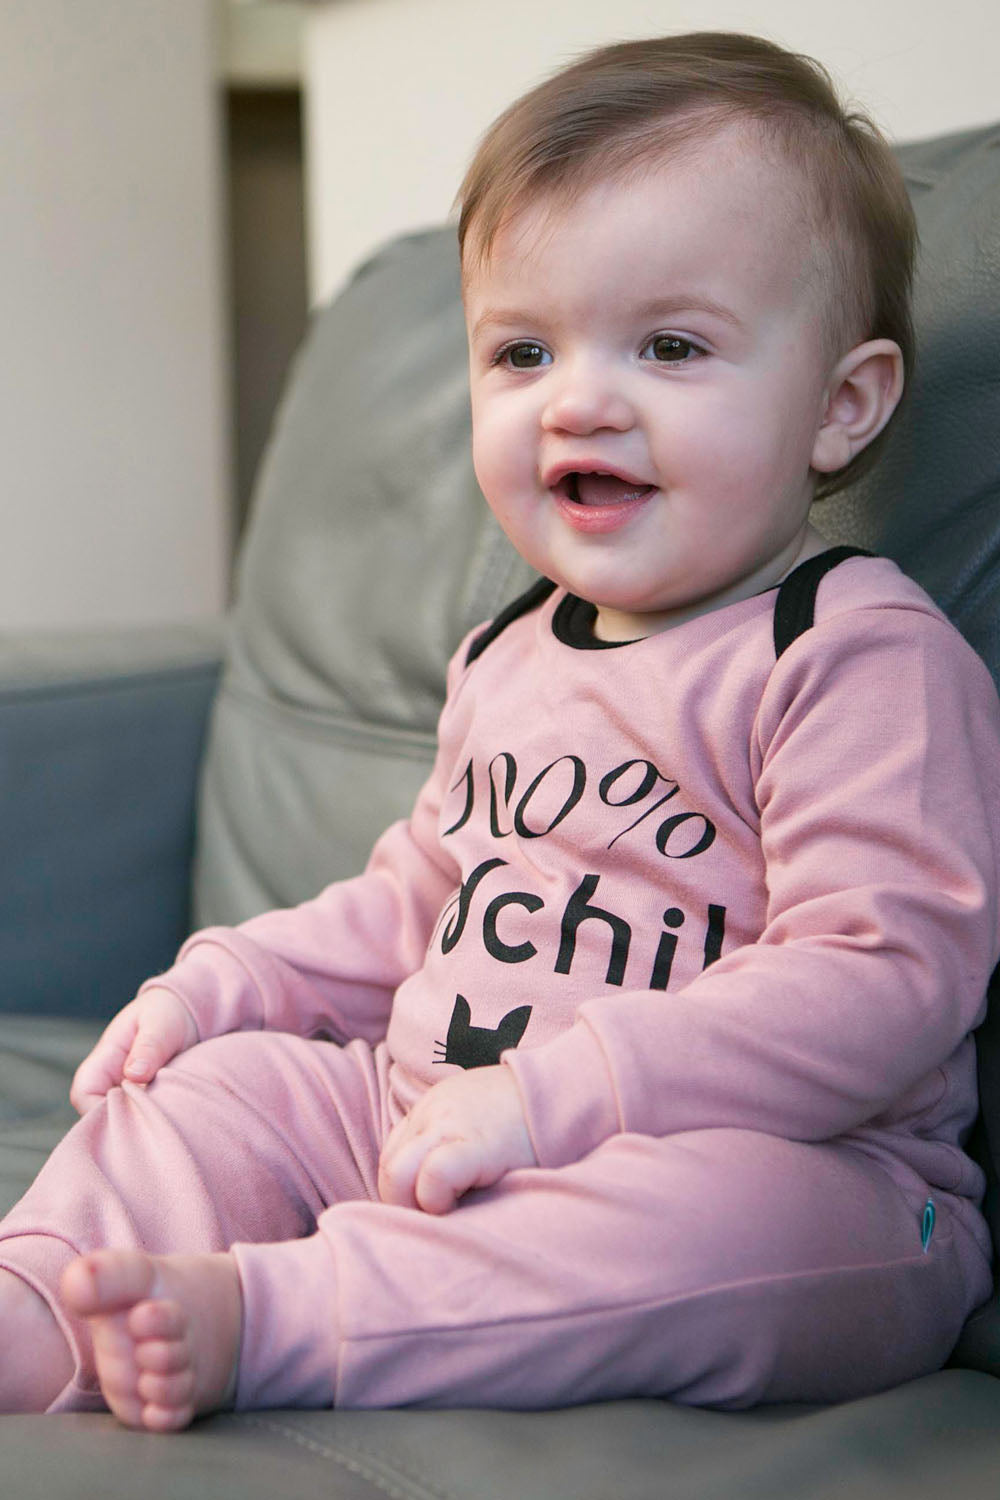 100% cotton baby romper. made in Britain using chemical free inks.